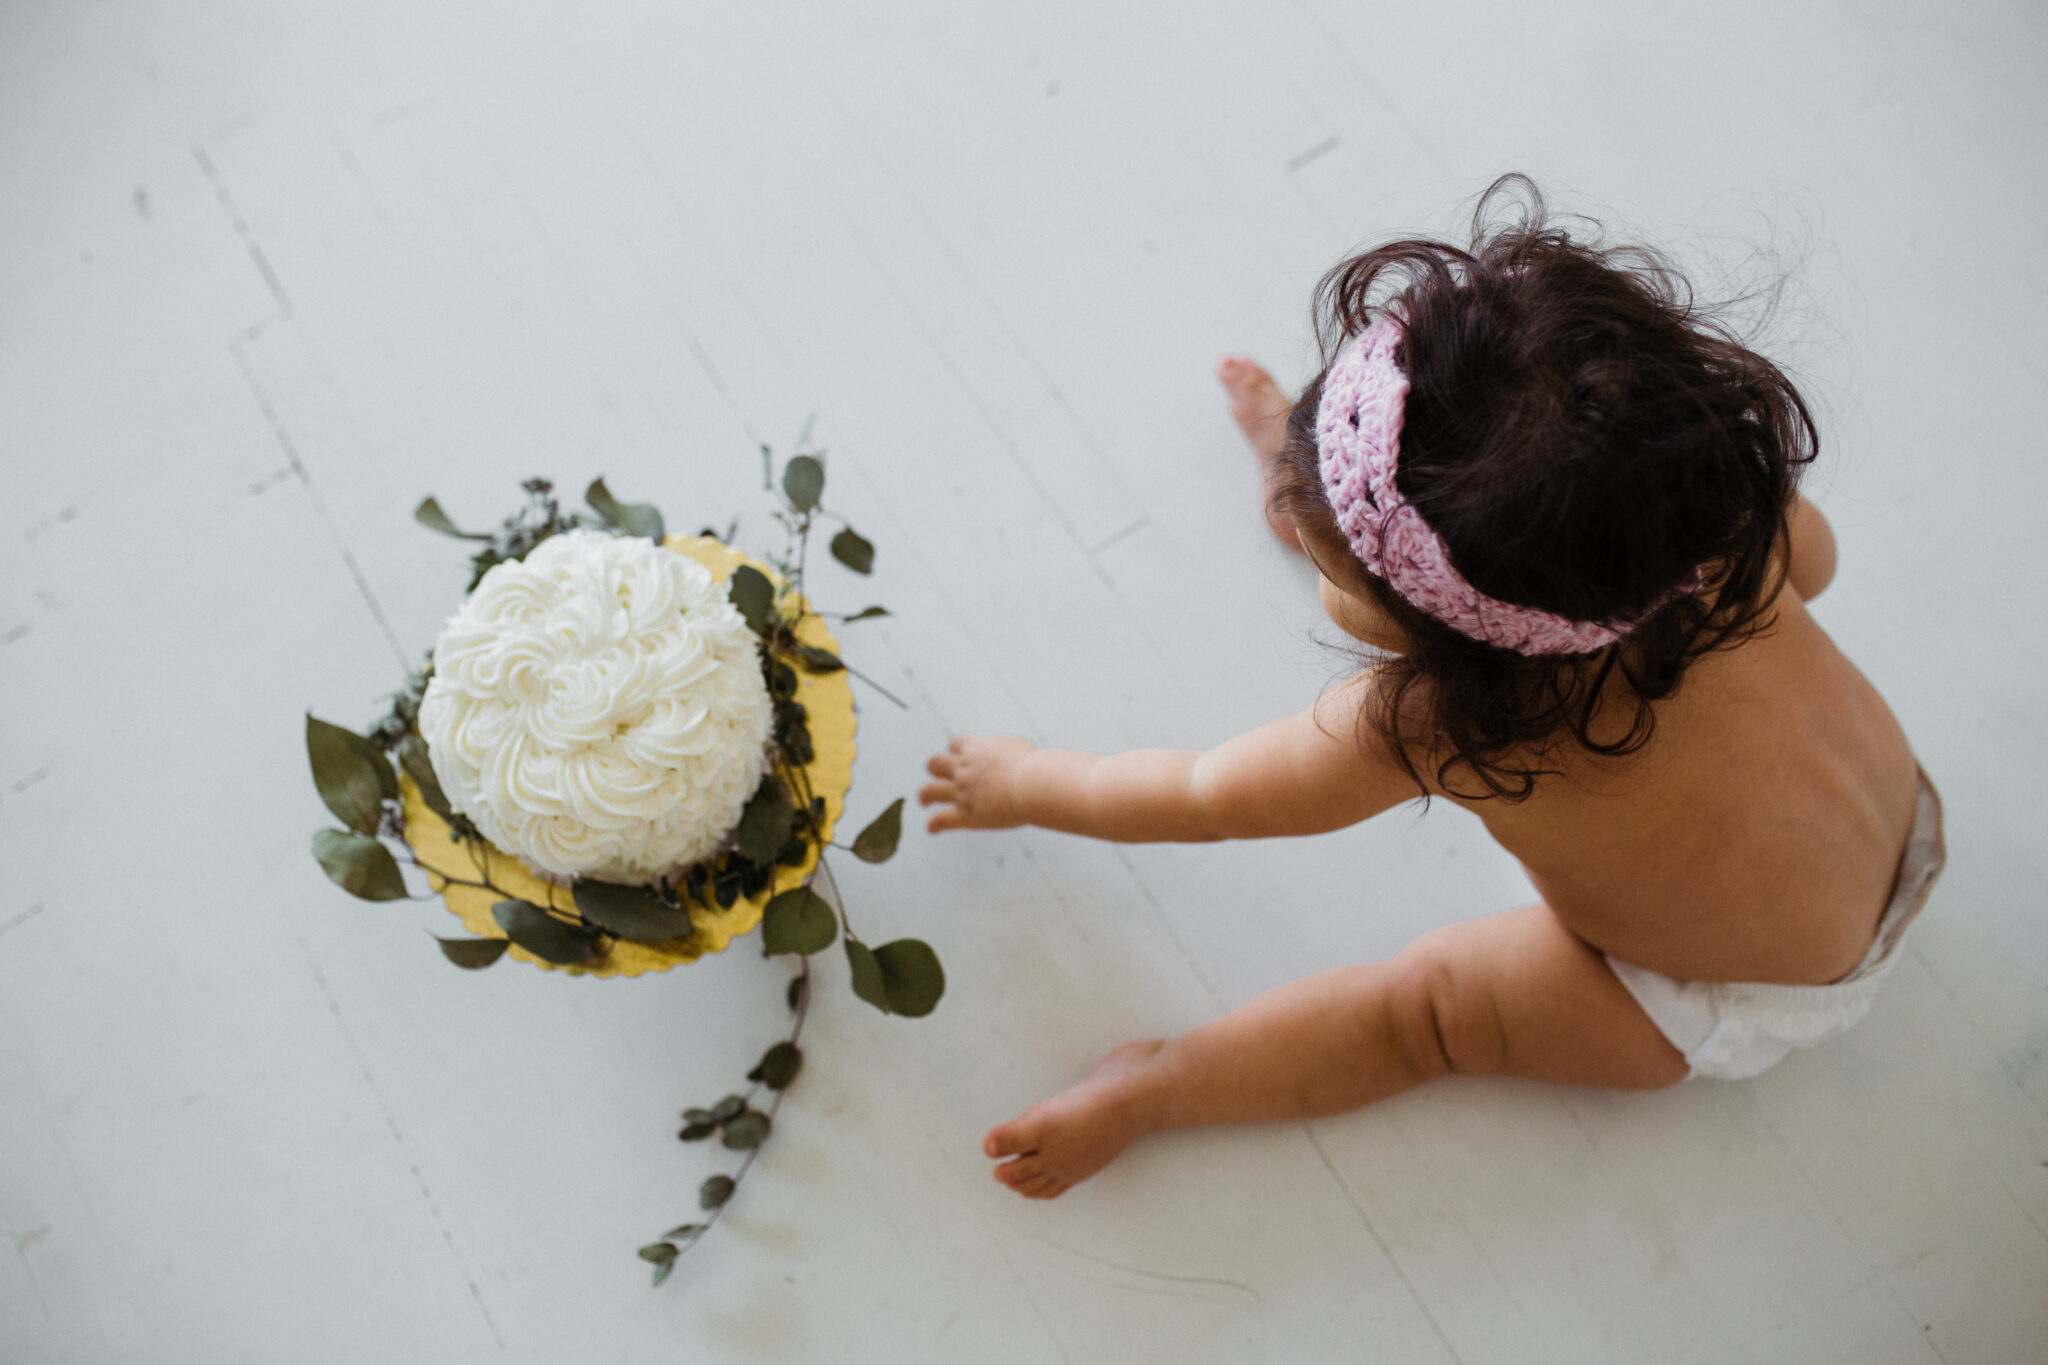 First birthday cake smash #cakesmash #firstbirthday #babygirl